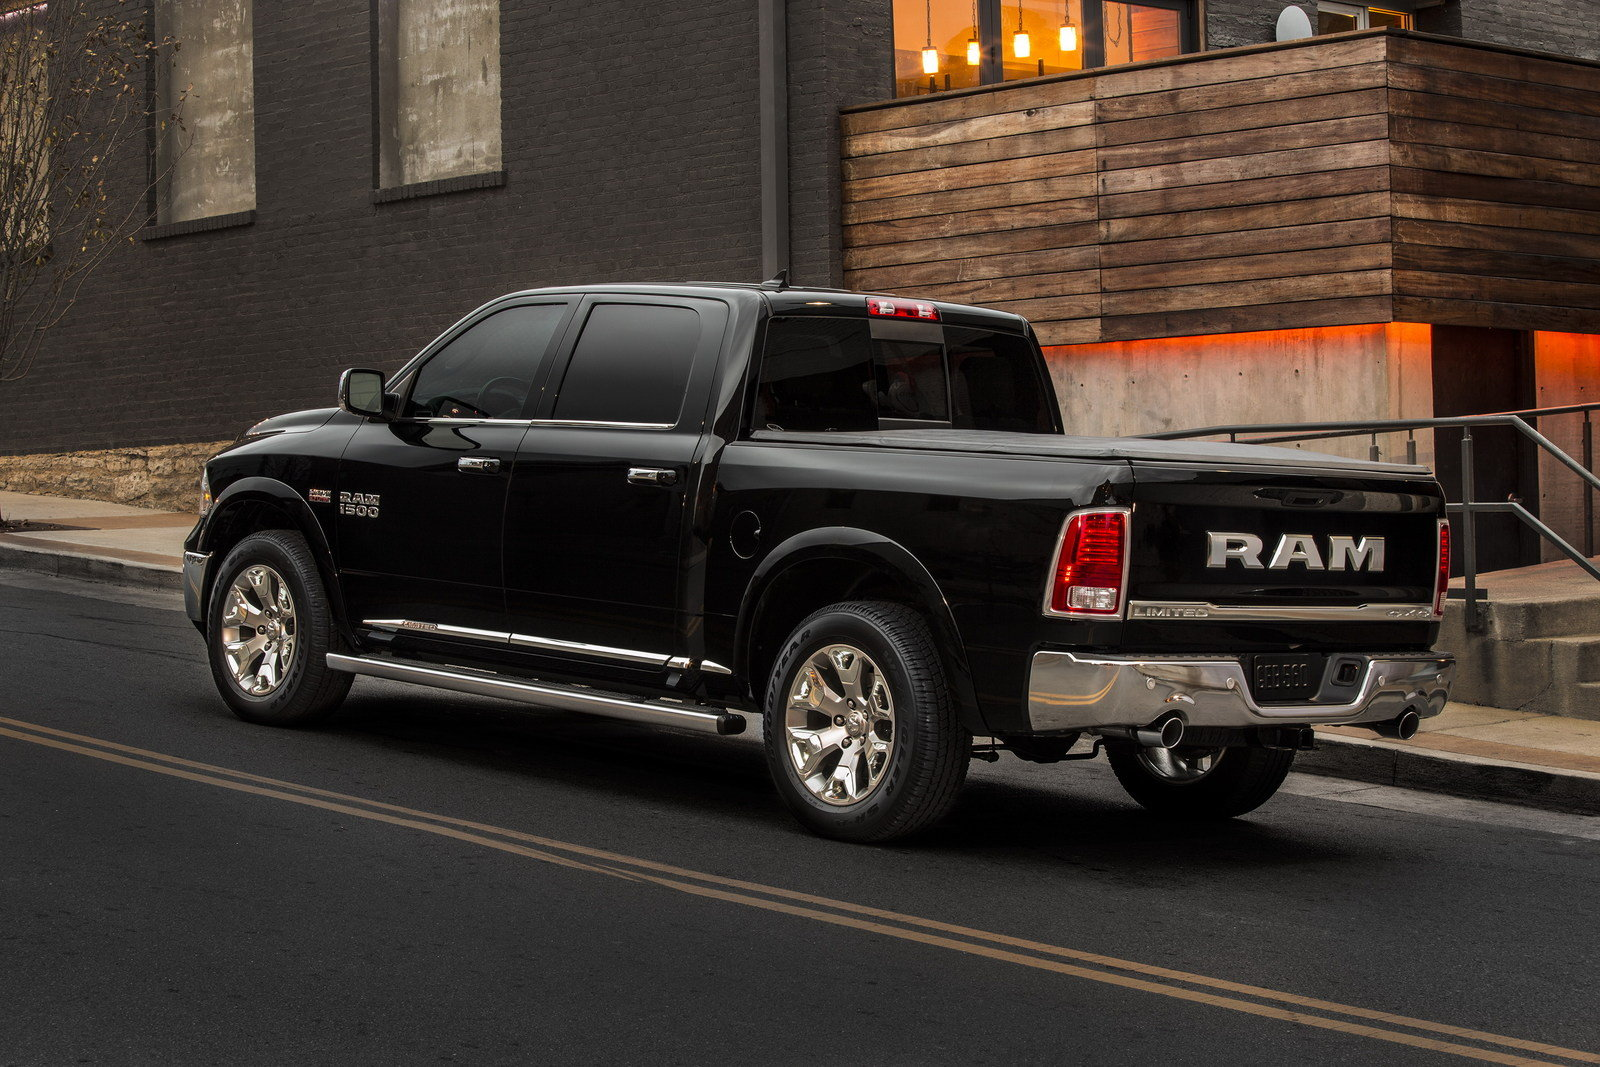 2016 ram laramie limited picture 616735 truck review top speed. Black Bedroom Furniture Sets. Home Design Ideas